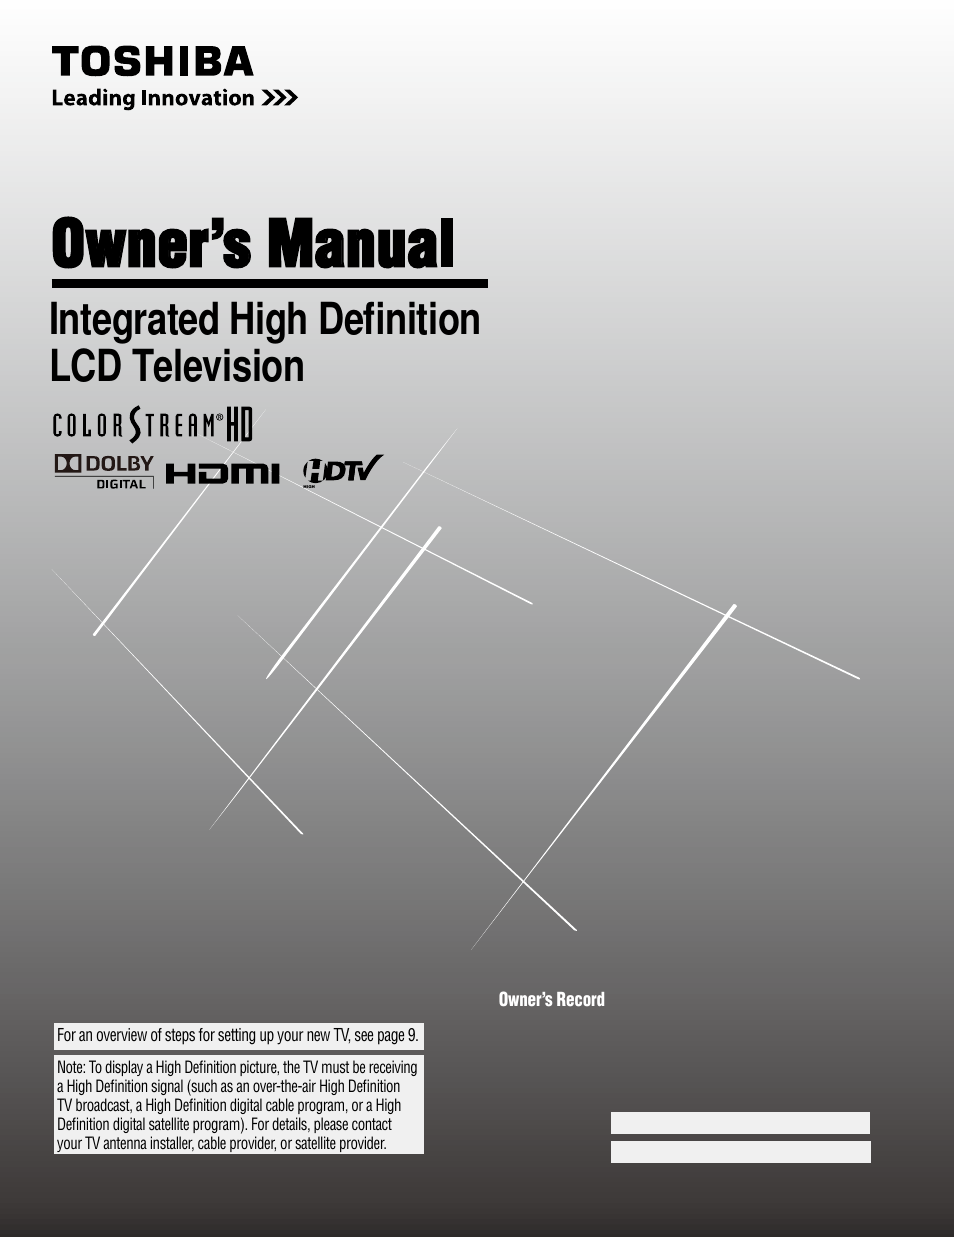 toshiba 37av52u user manual 62 pages rh manualsdir com toshiba model 32av502u manual Toshiba 32AV502U Stand